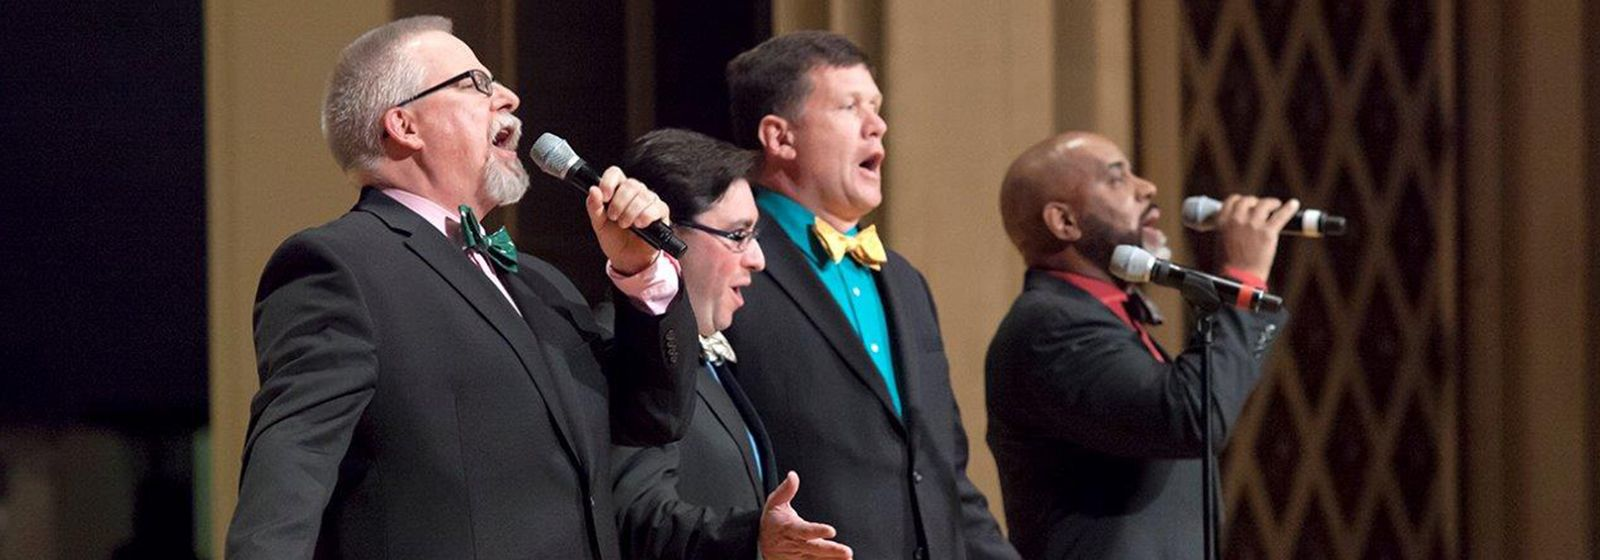 Video: 'You raise me up' stirs crowd